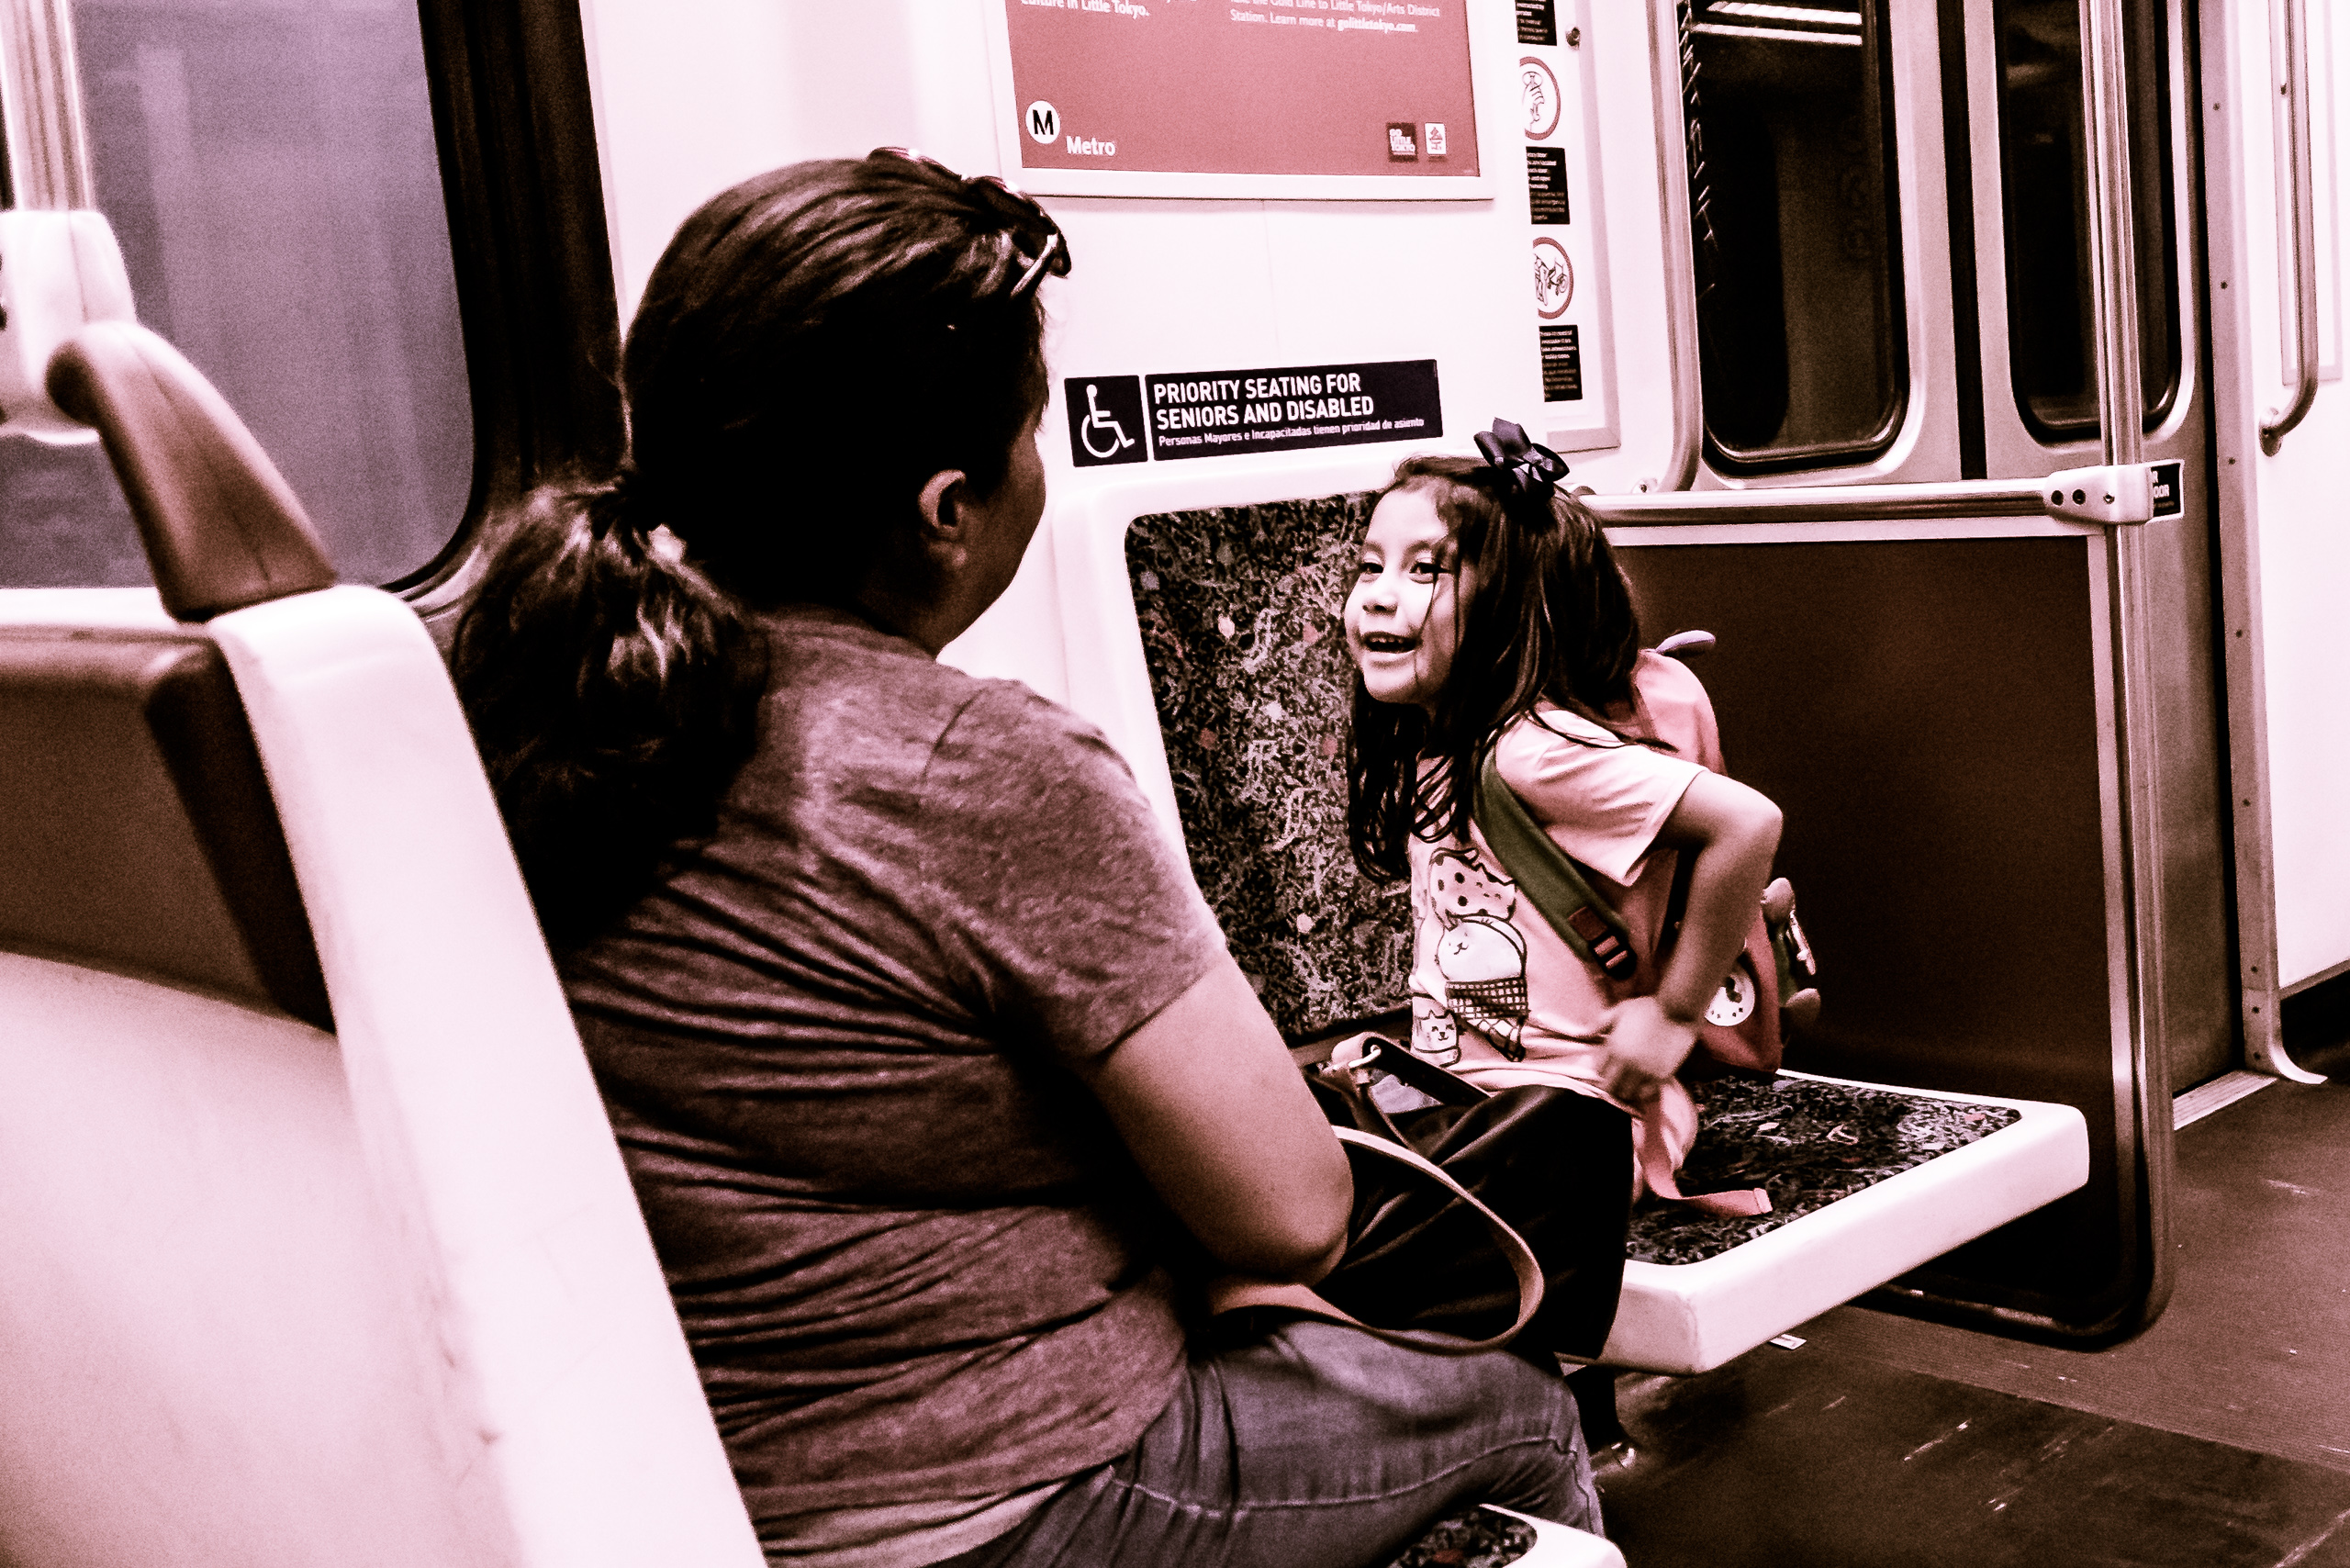 A young girl on the subway, smiling and talking intensely to an older adult.